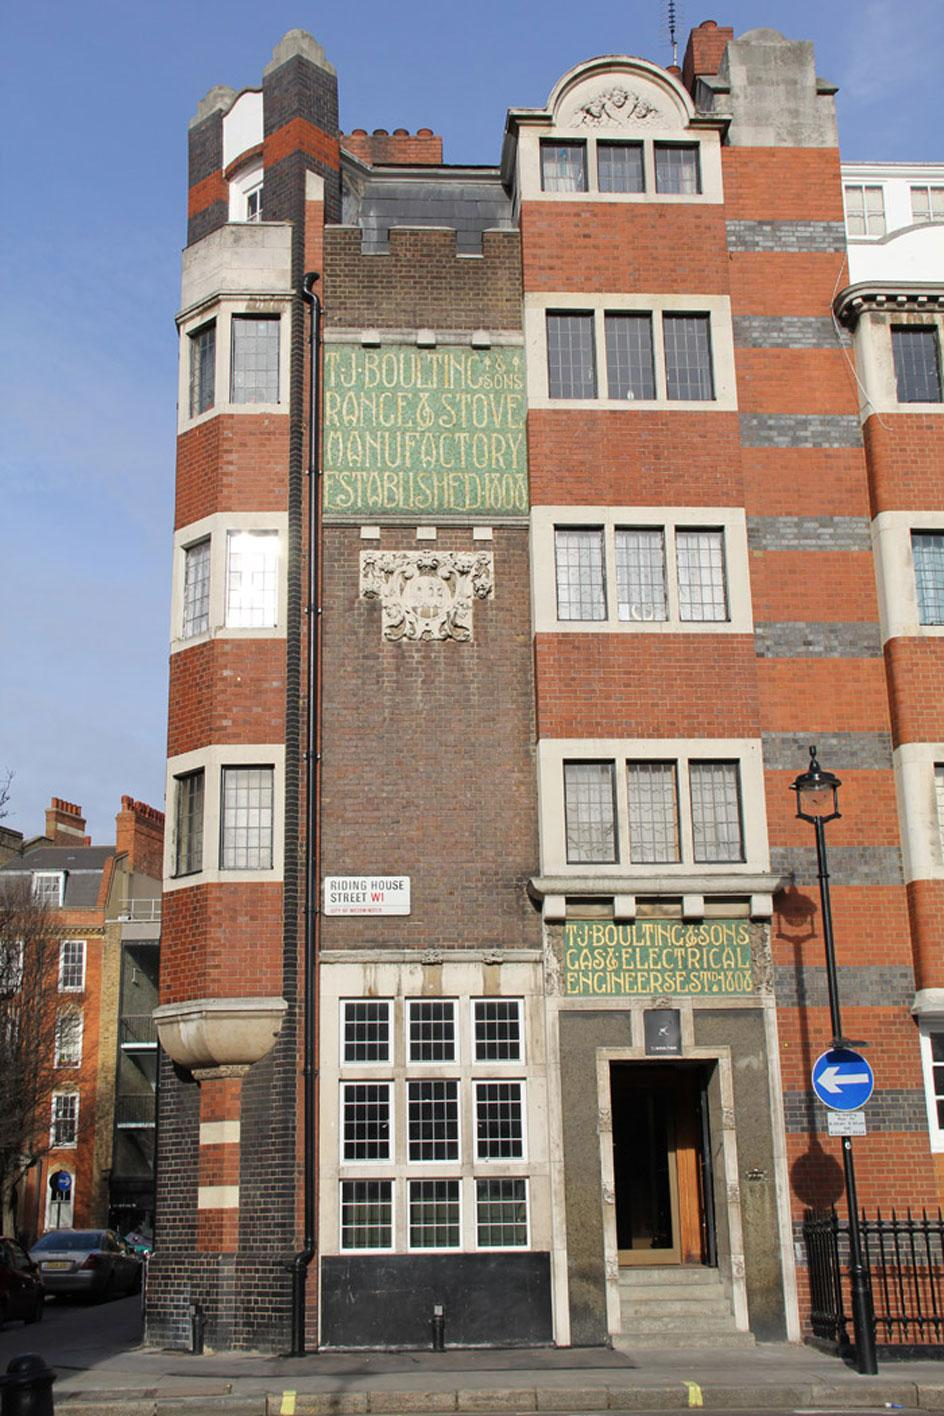 Exterior view of TJ Boulting gallery in Fitzrovia London